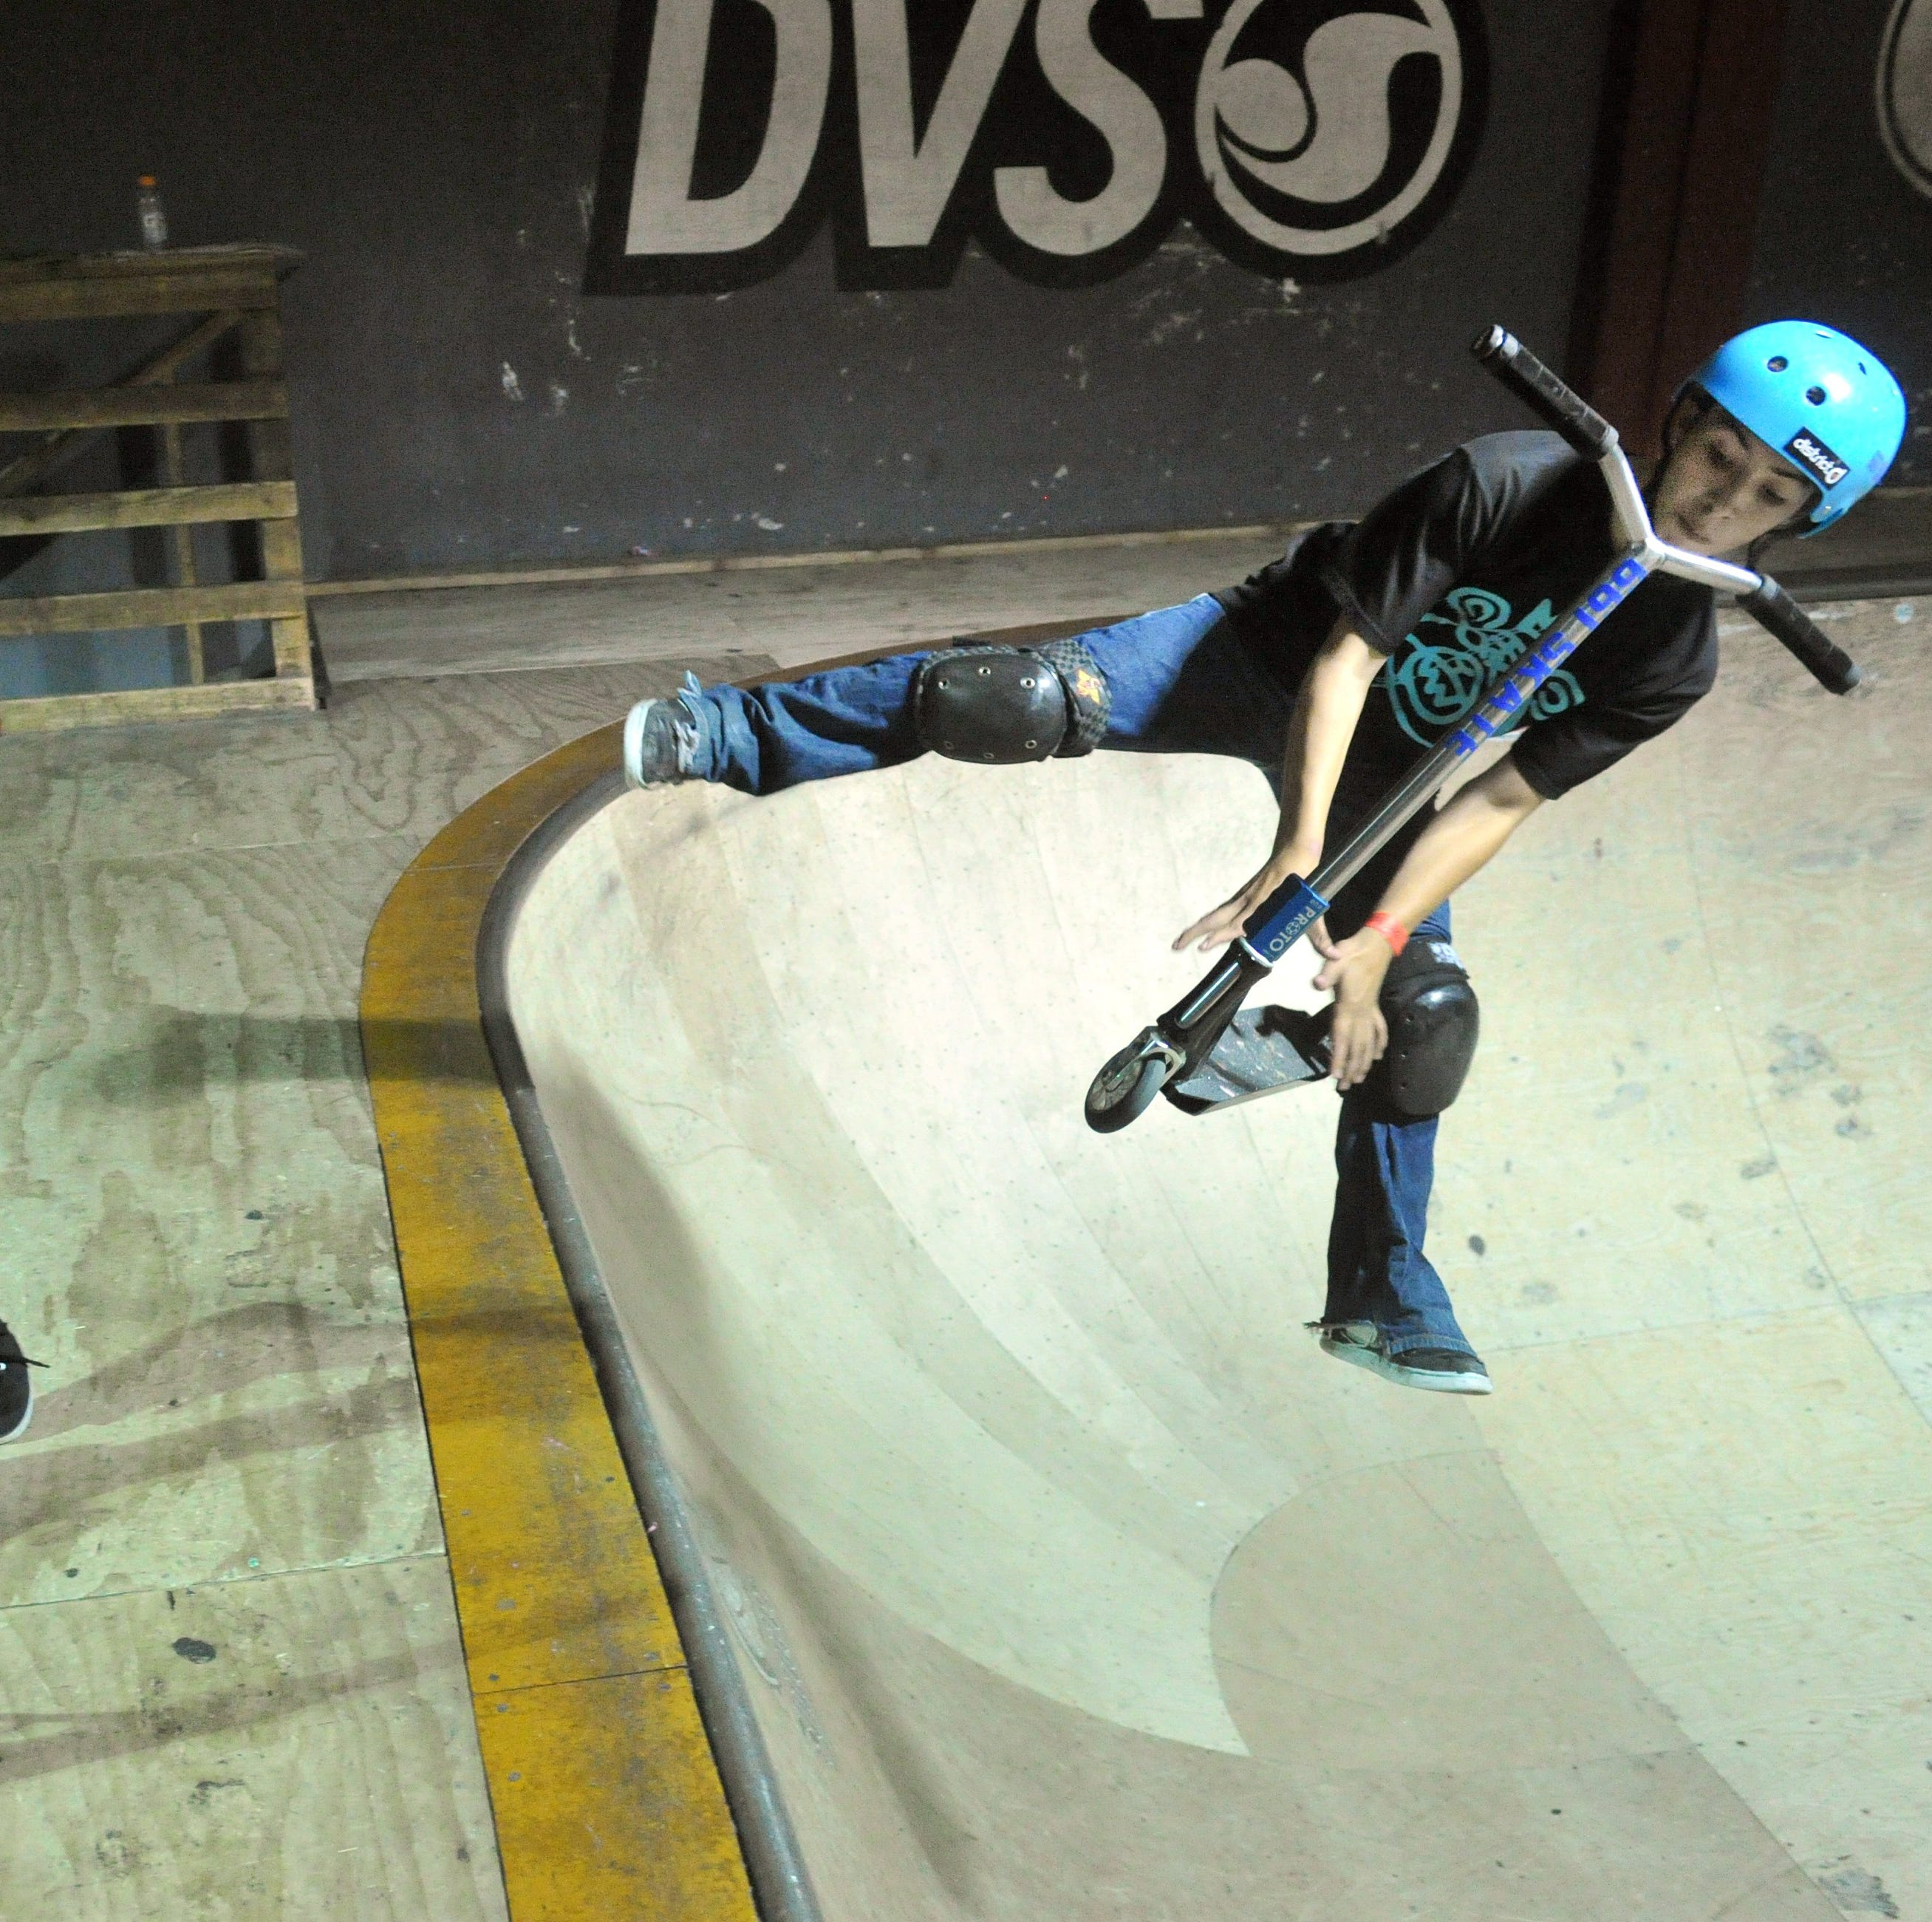 SkateLab in Simi Valley looks to be closing after 21 years